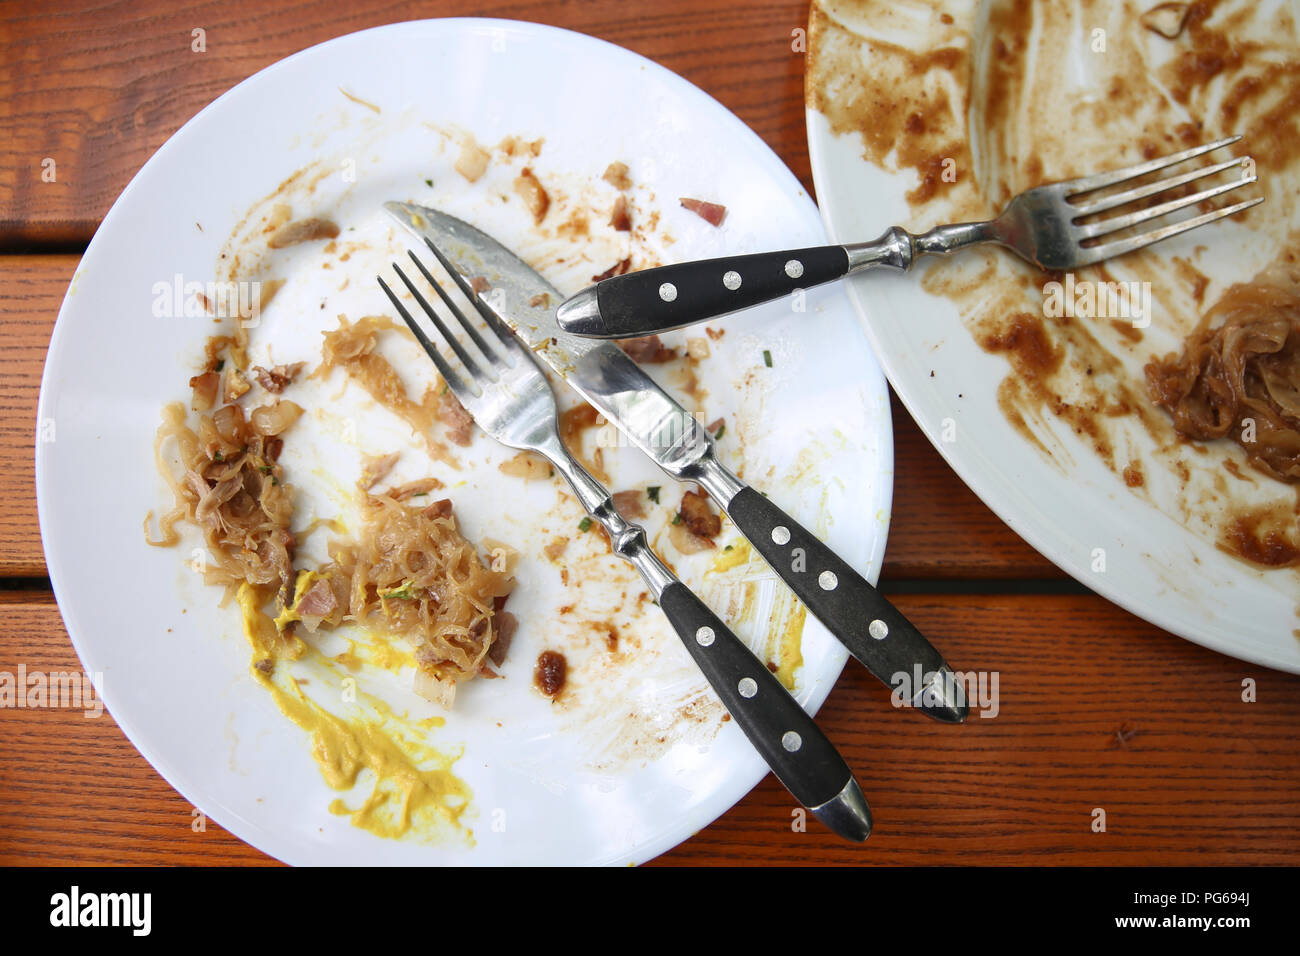 Leftovers plate with cutlery on wooden table - Stock Image